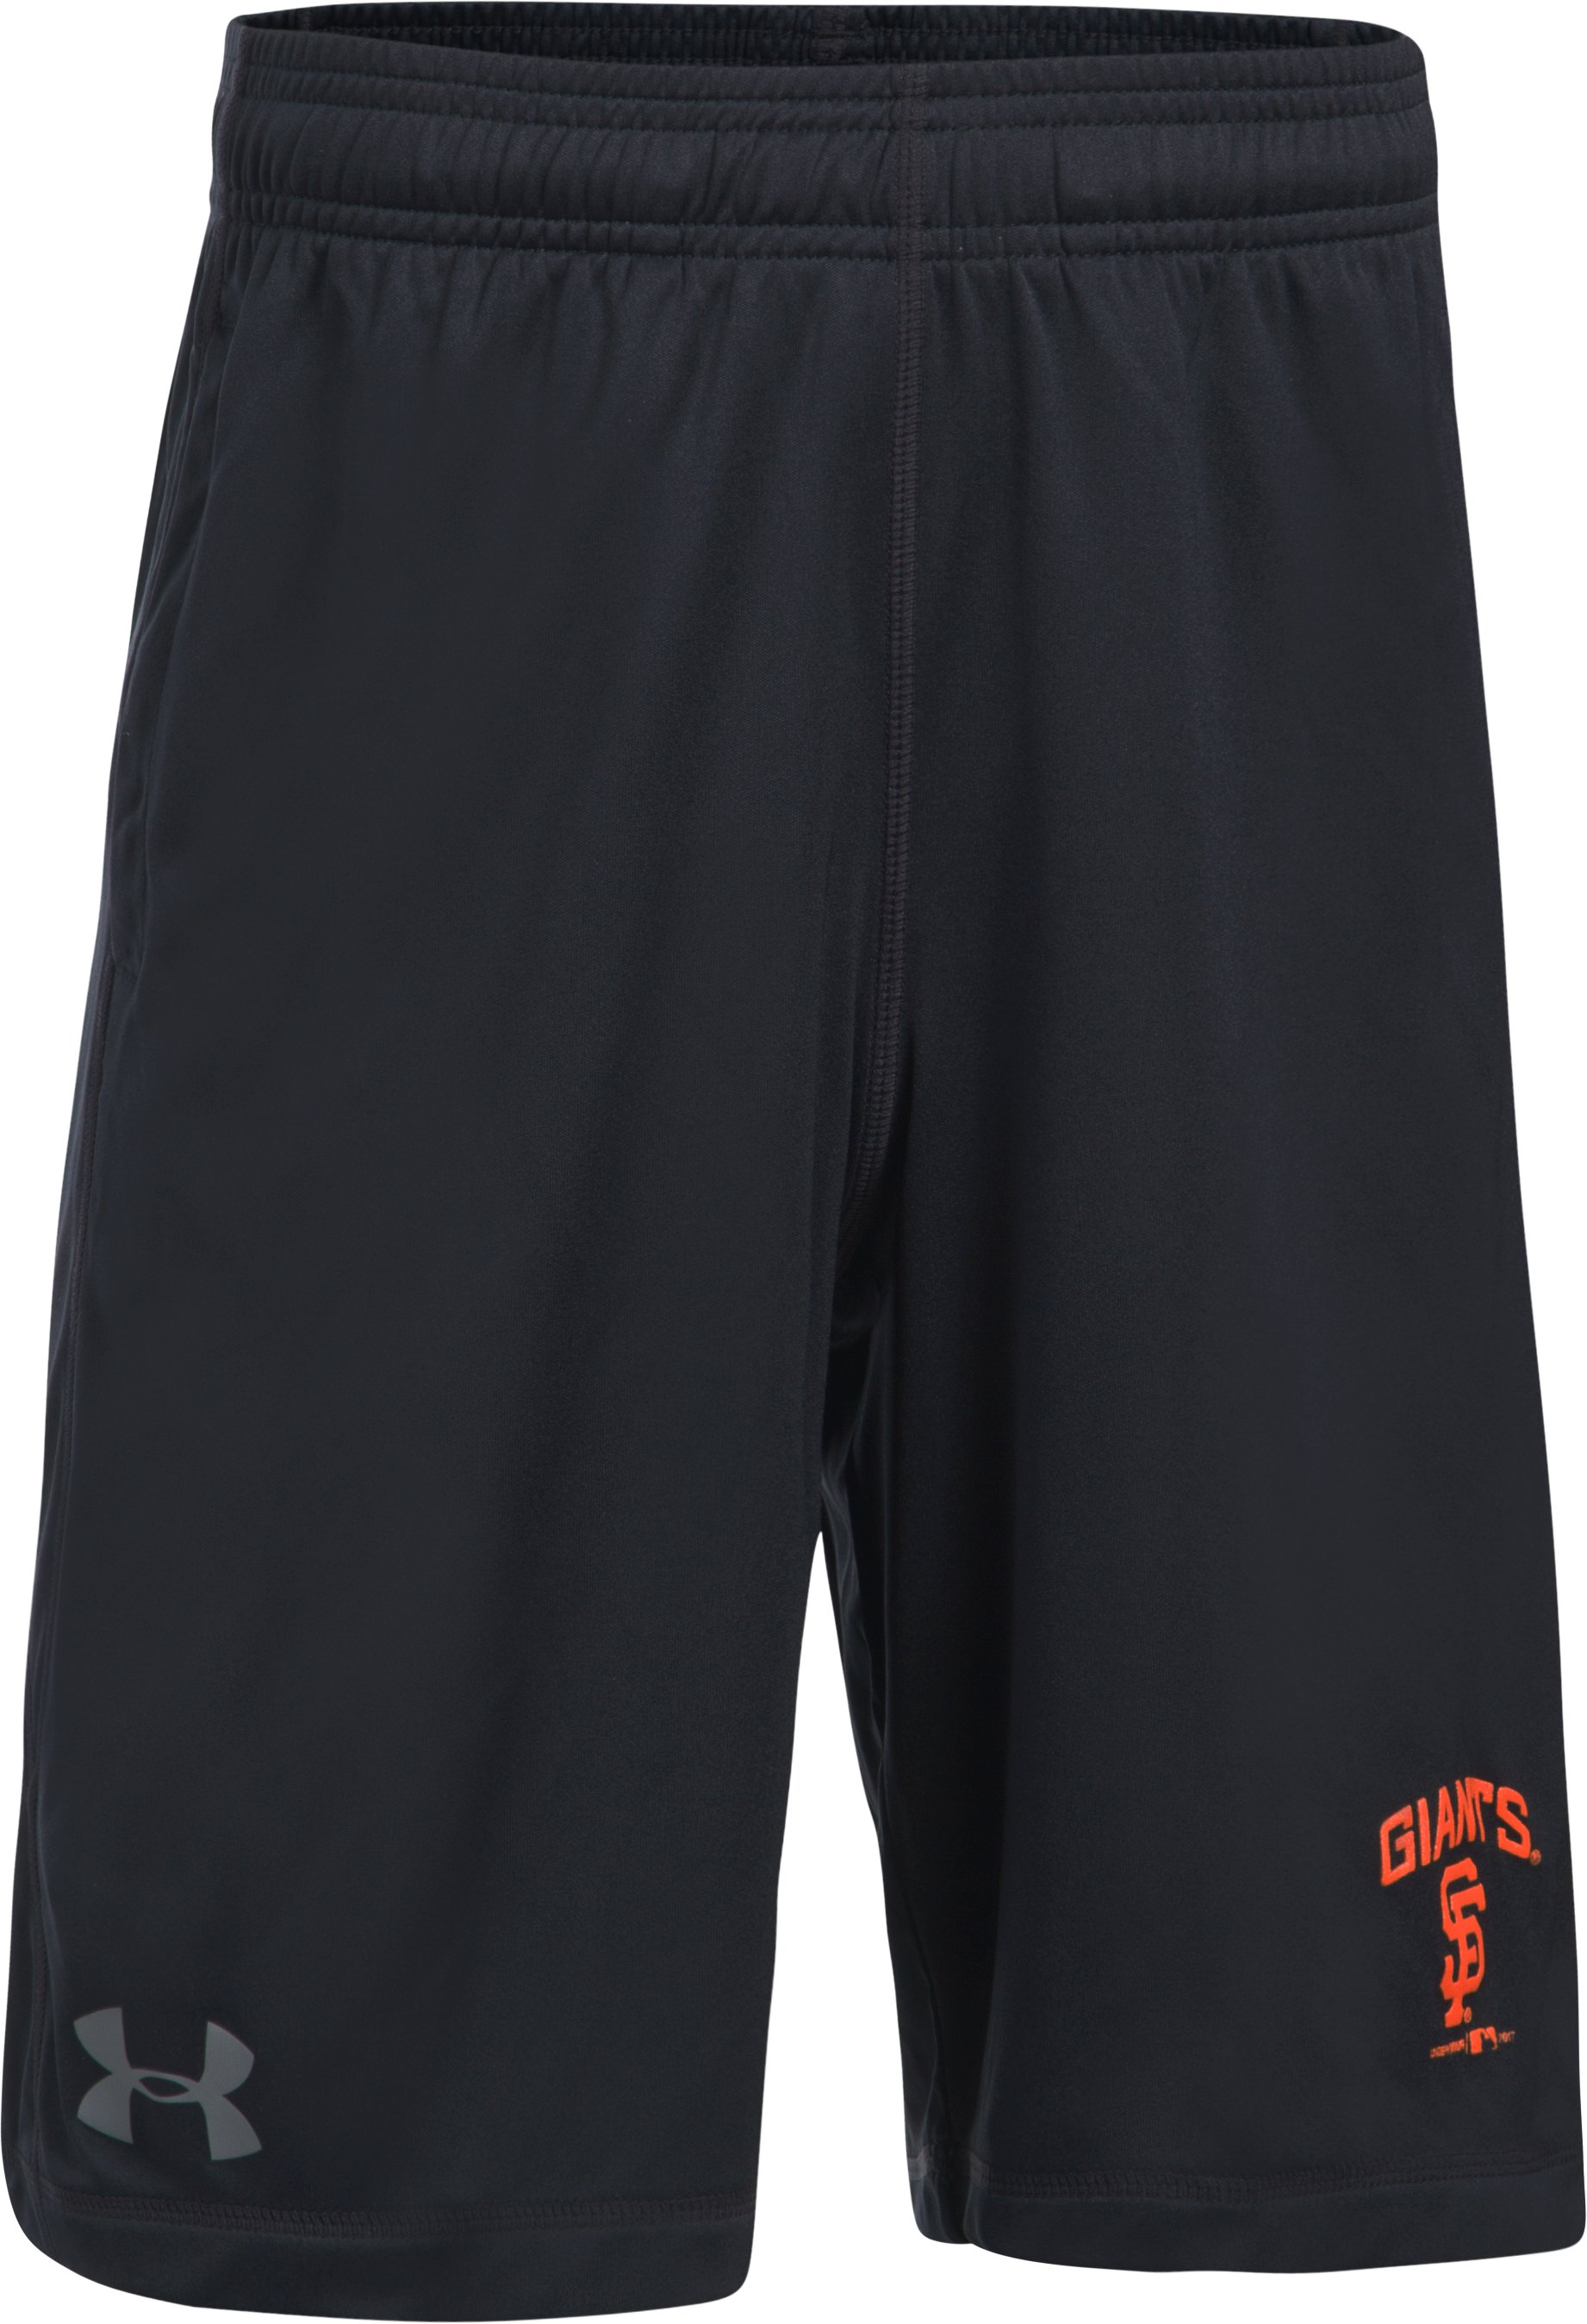 Boys' San Francisco Giants Training Shorts, Black